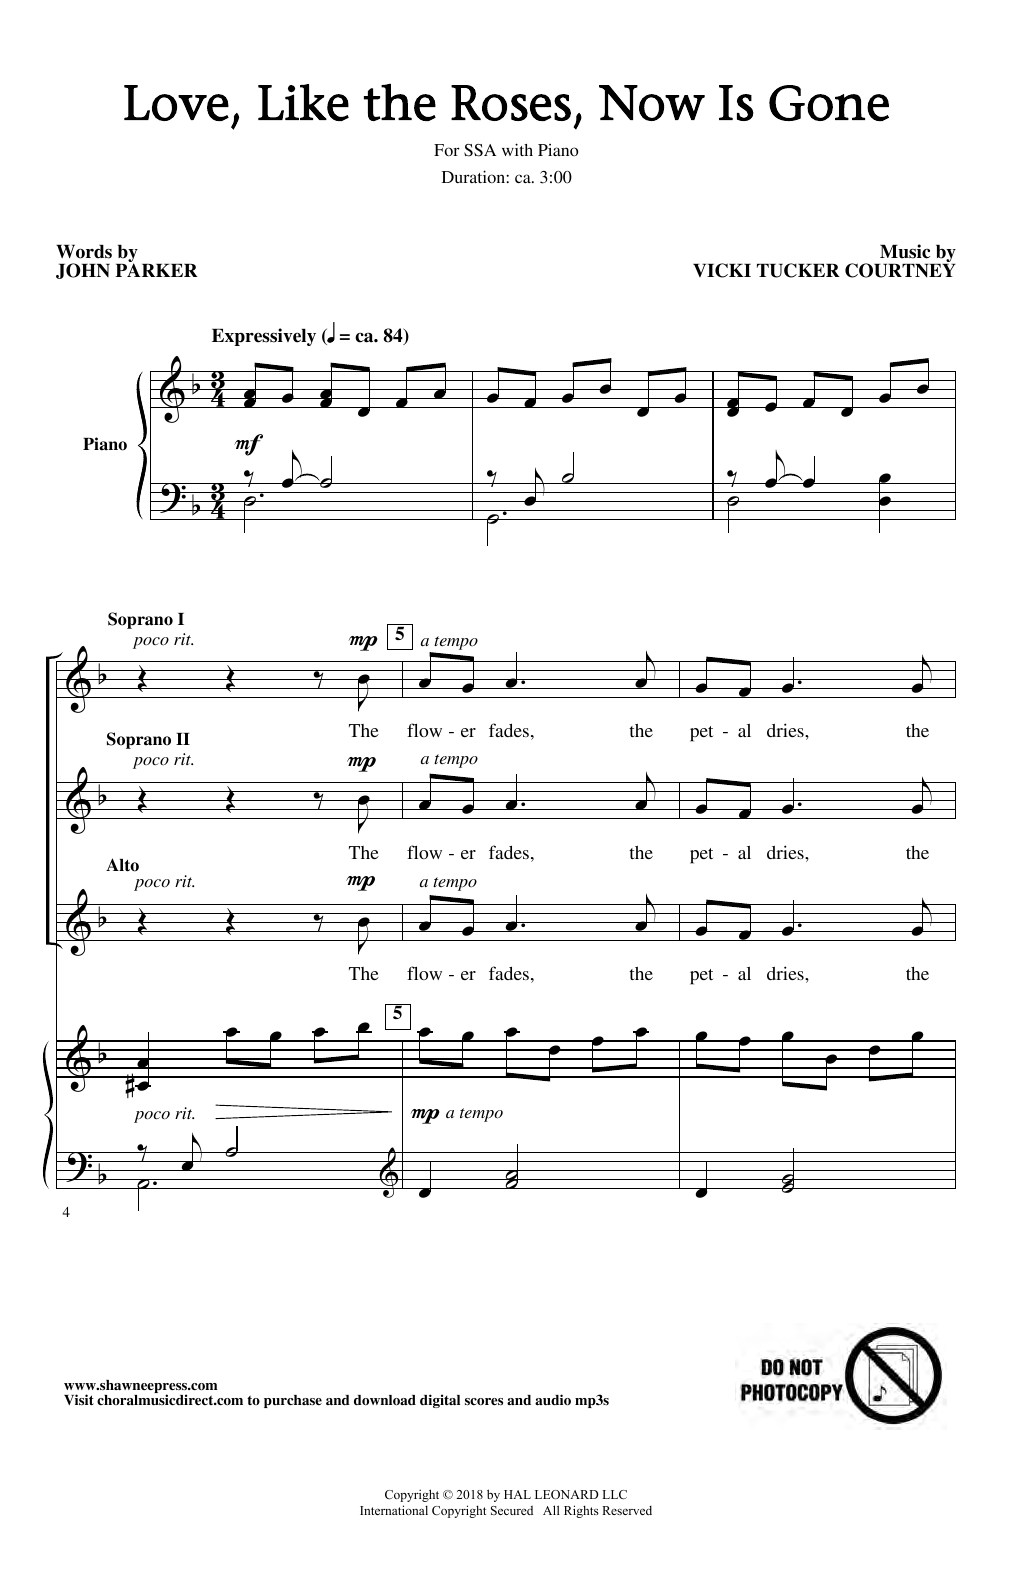 Love, Like The Roses, Now Is Gone (SSA Choir)